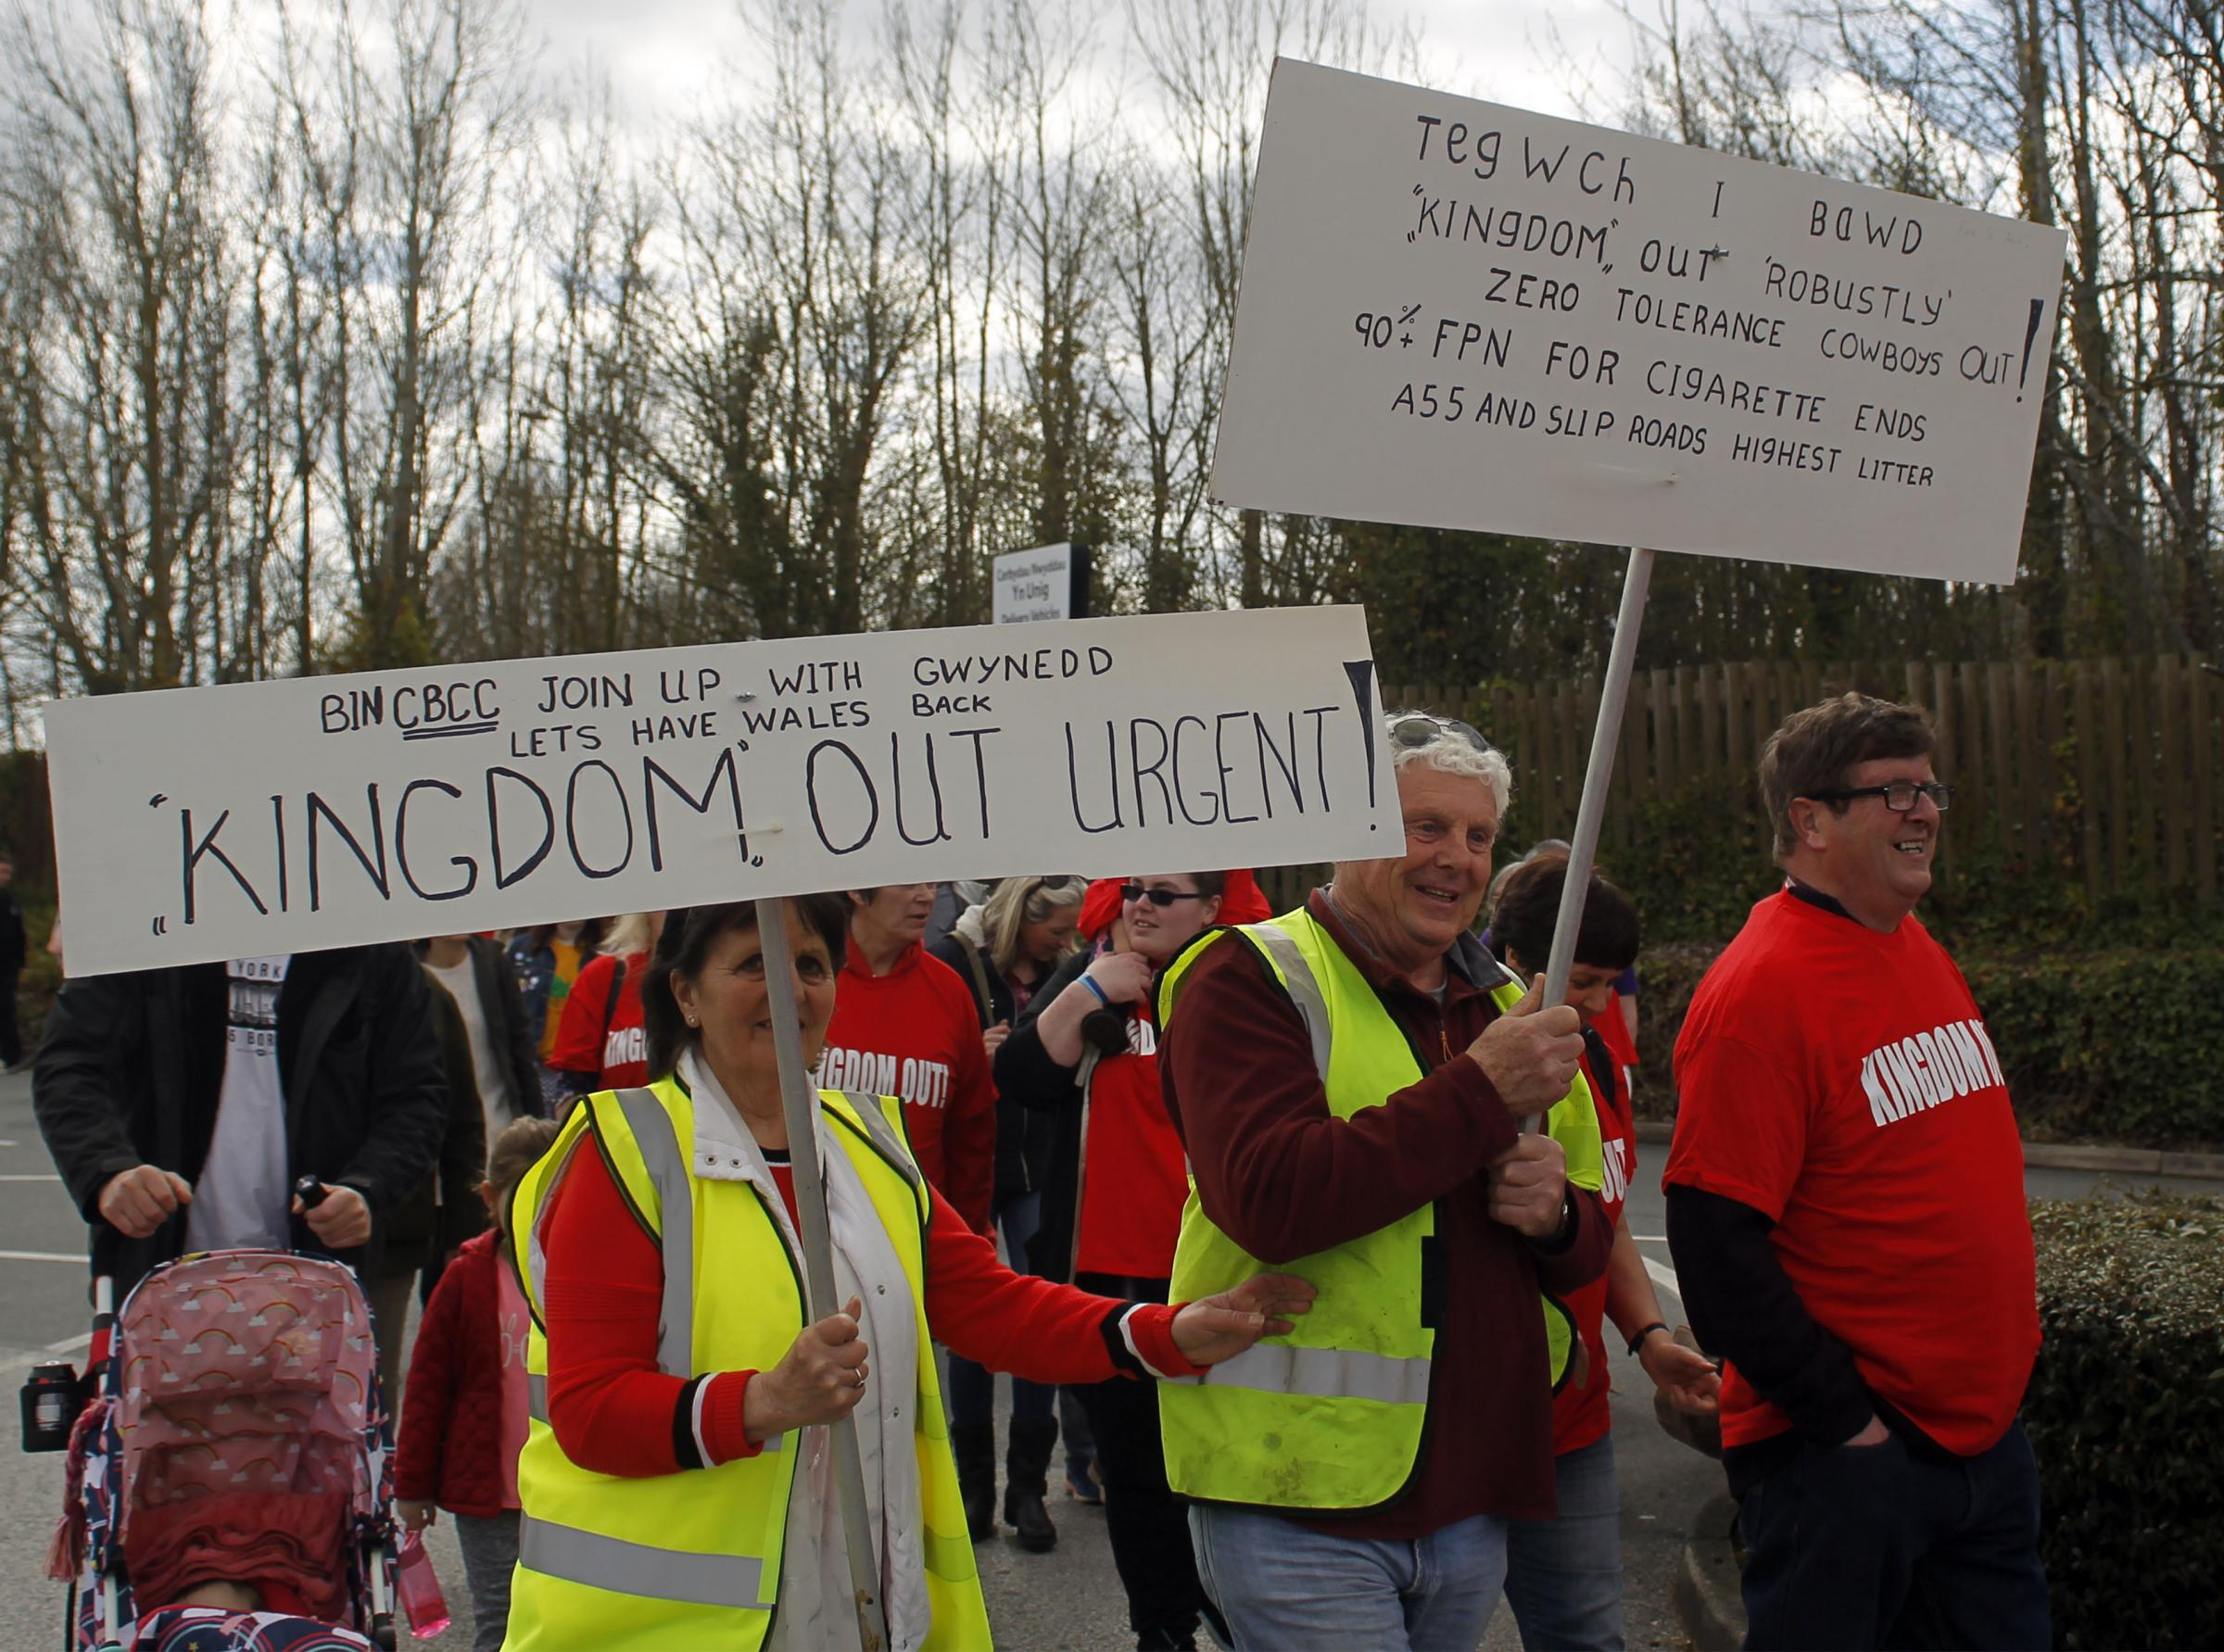 Protestors against Kingdom in Llandudno Junction on Satruday. Picture: David Thomas